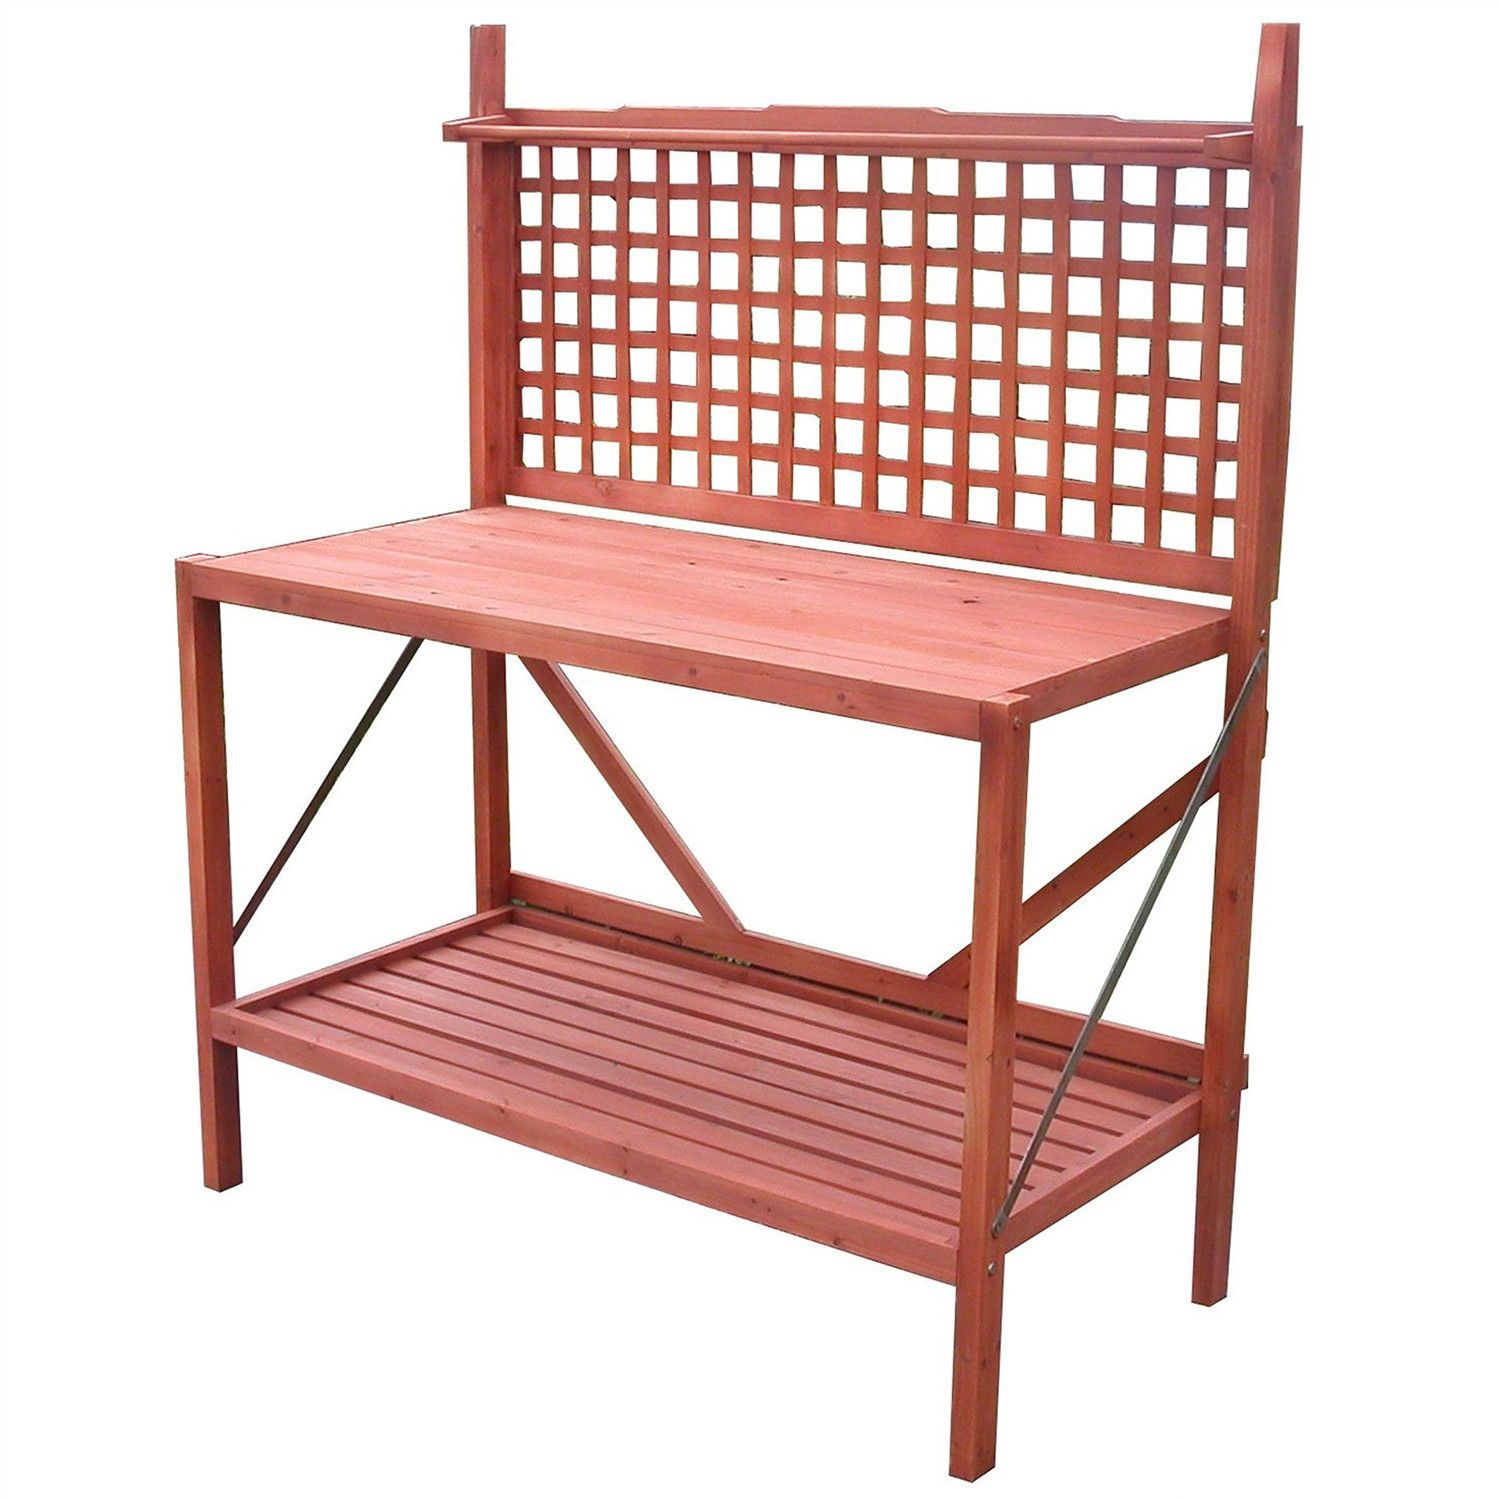 Outdoor Folding Wooden Potting Bench Garden Trellis with Storage